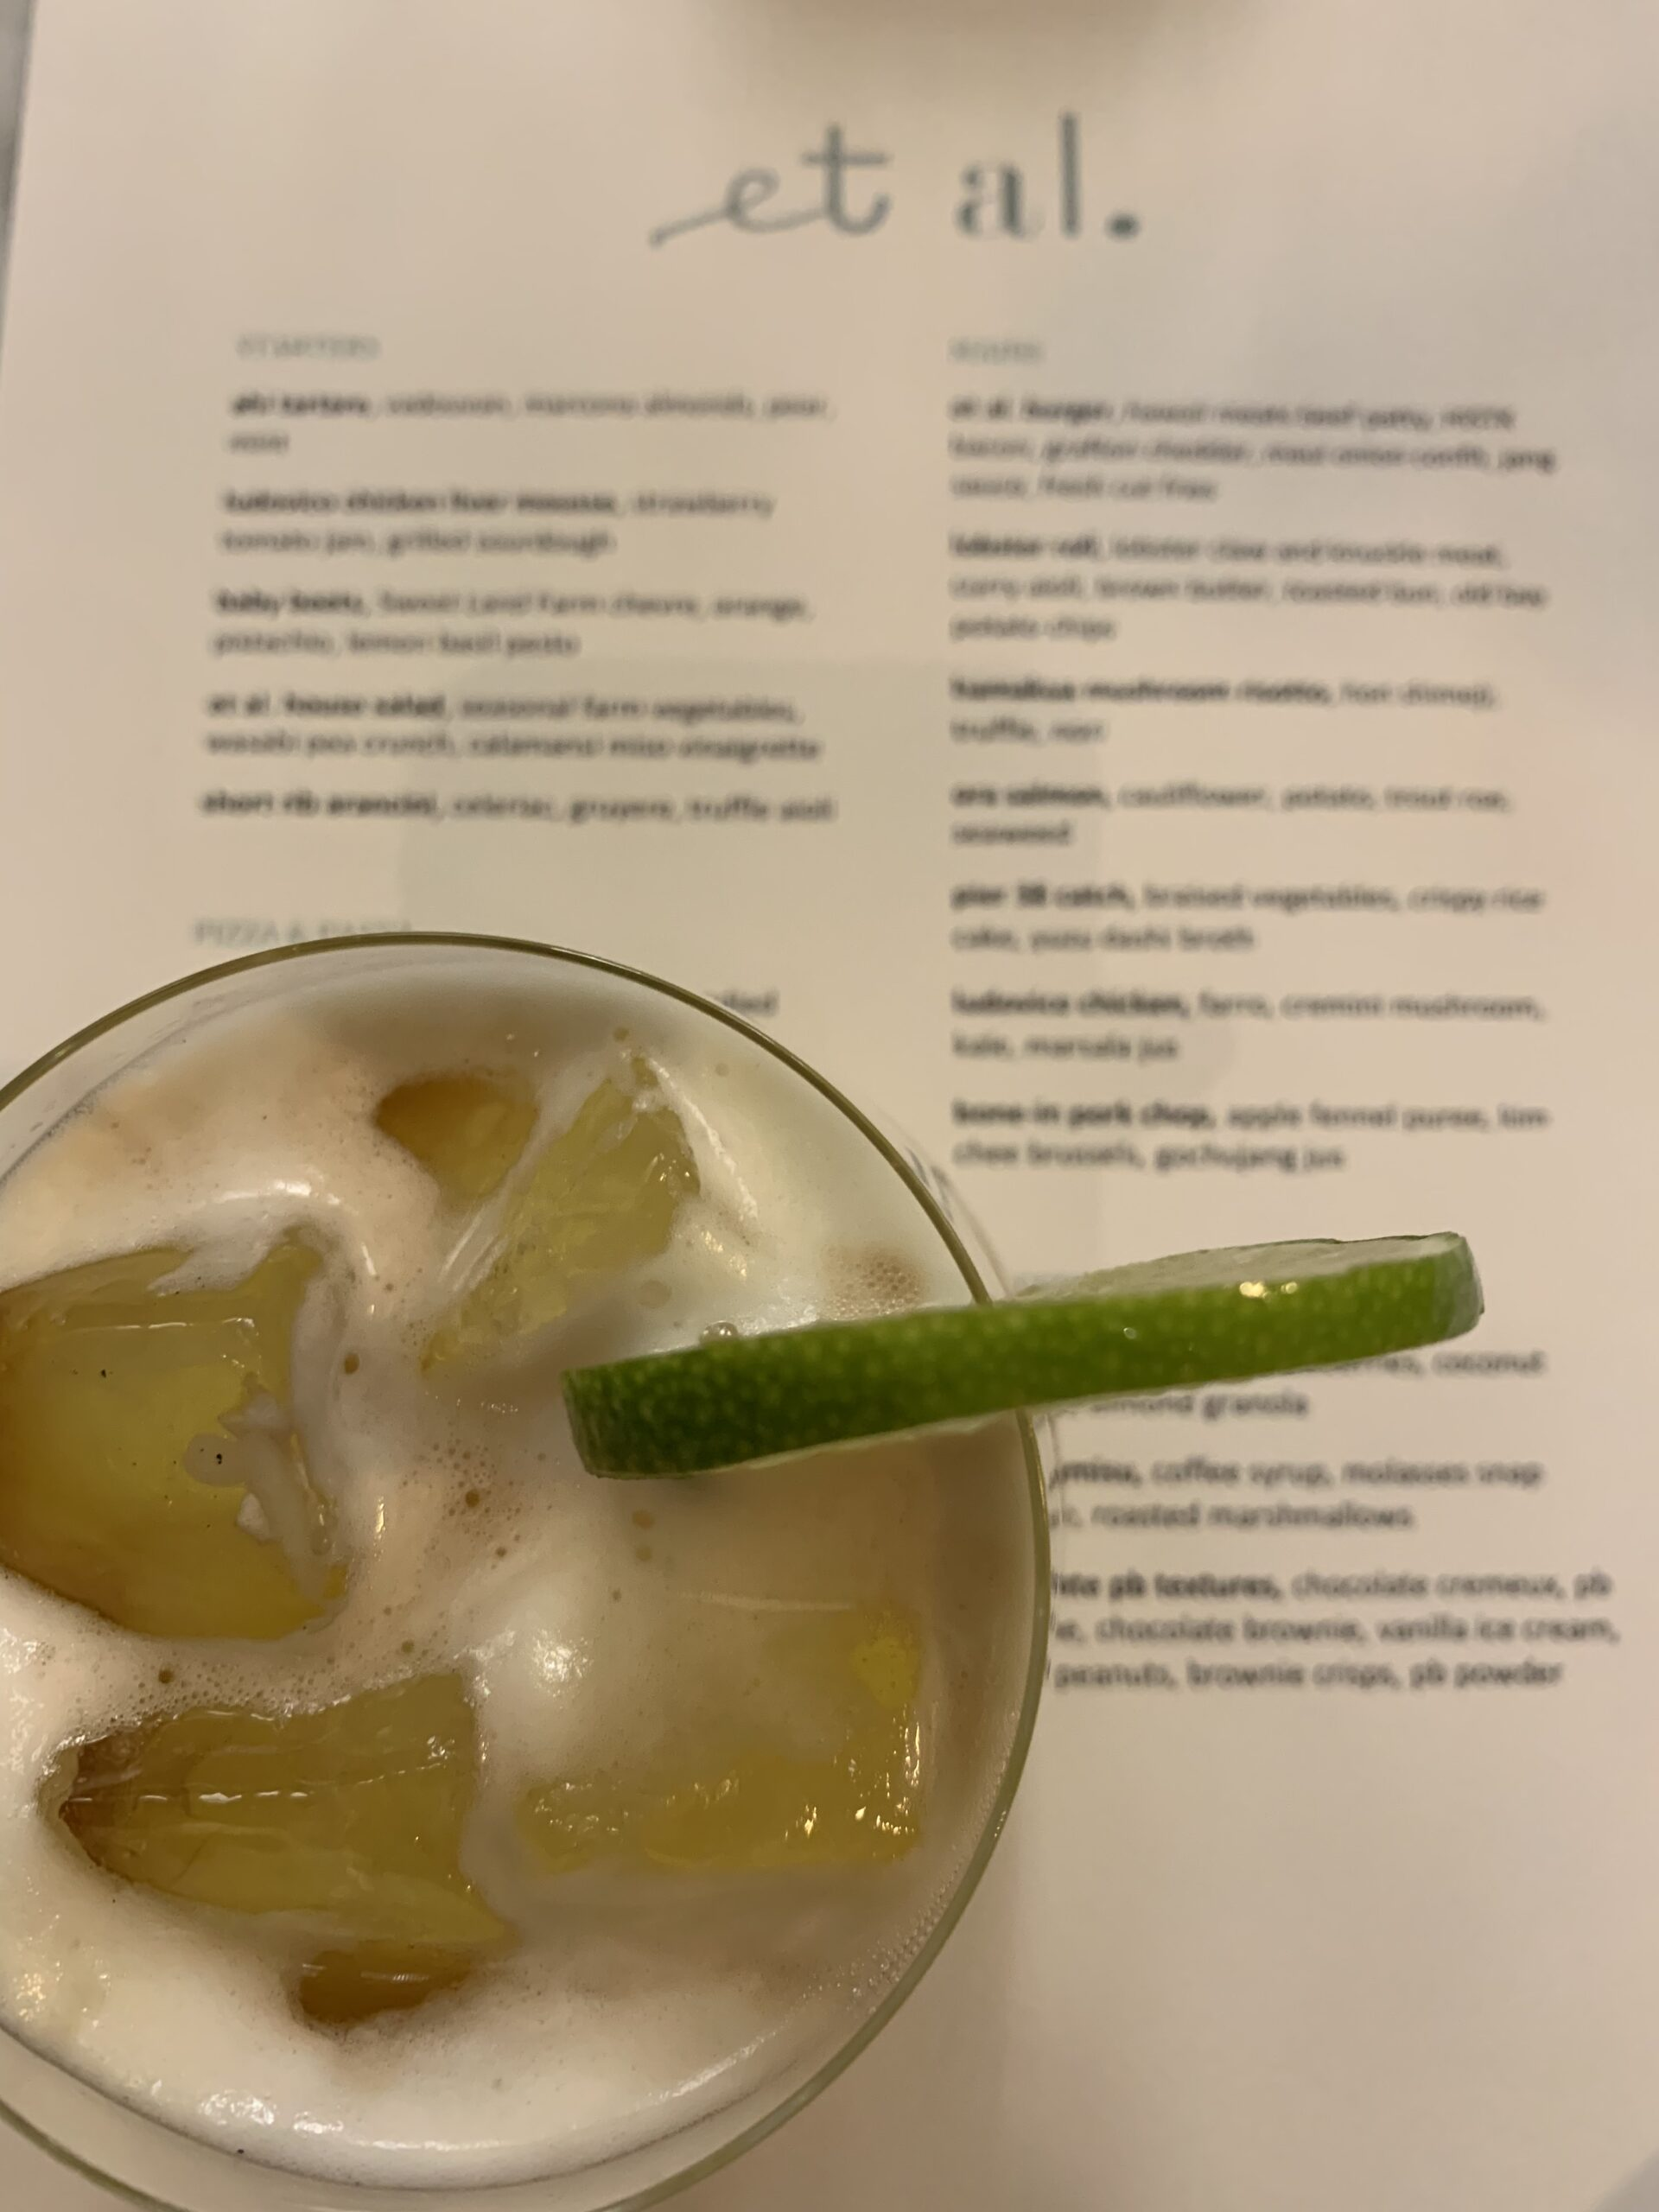 Cocktail garnished with a lime wedge sitting on a menu